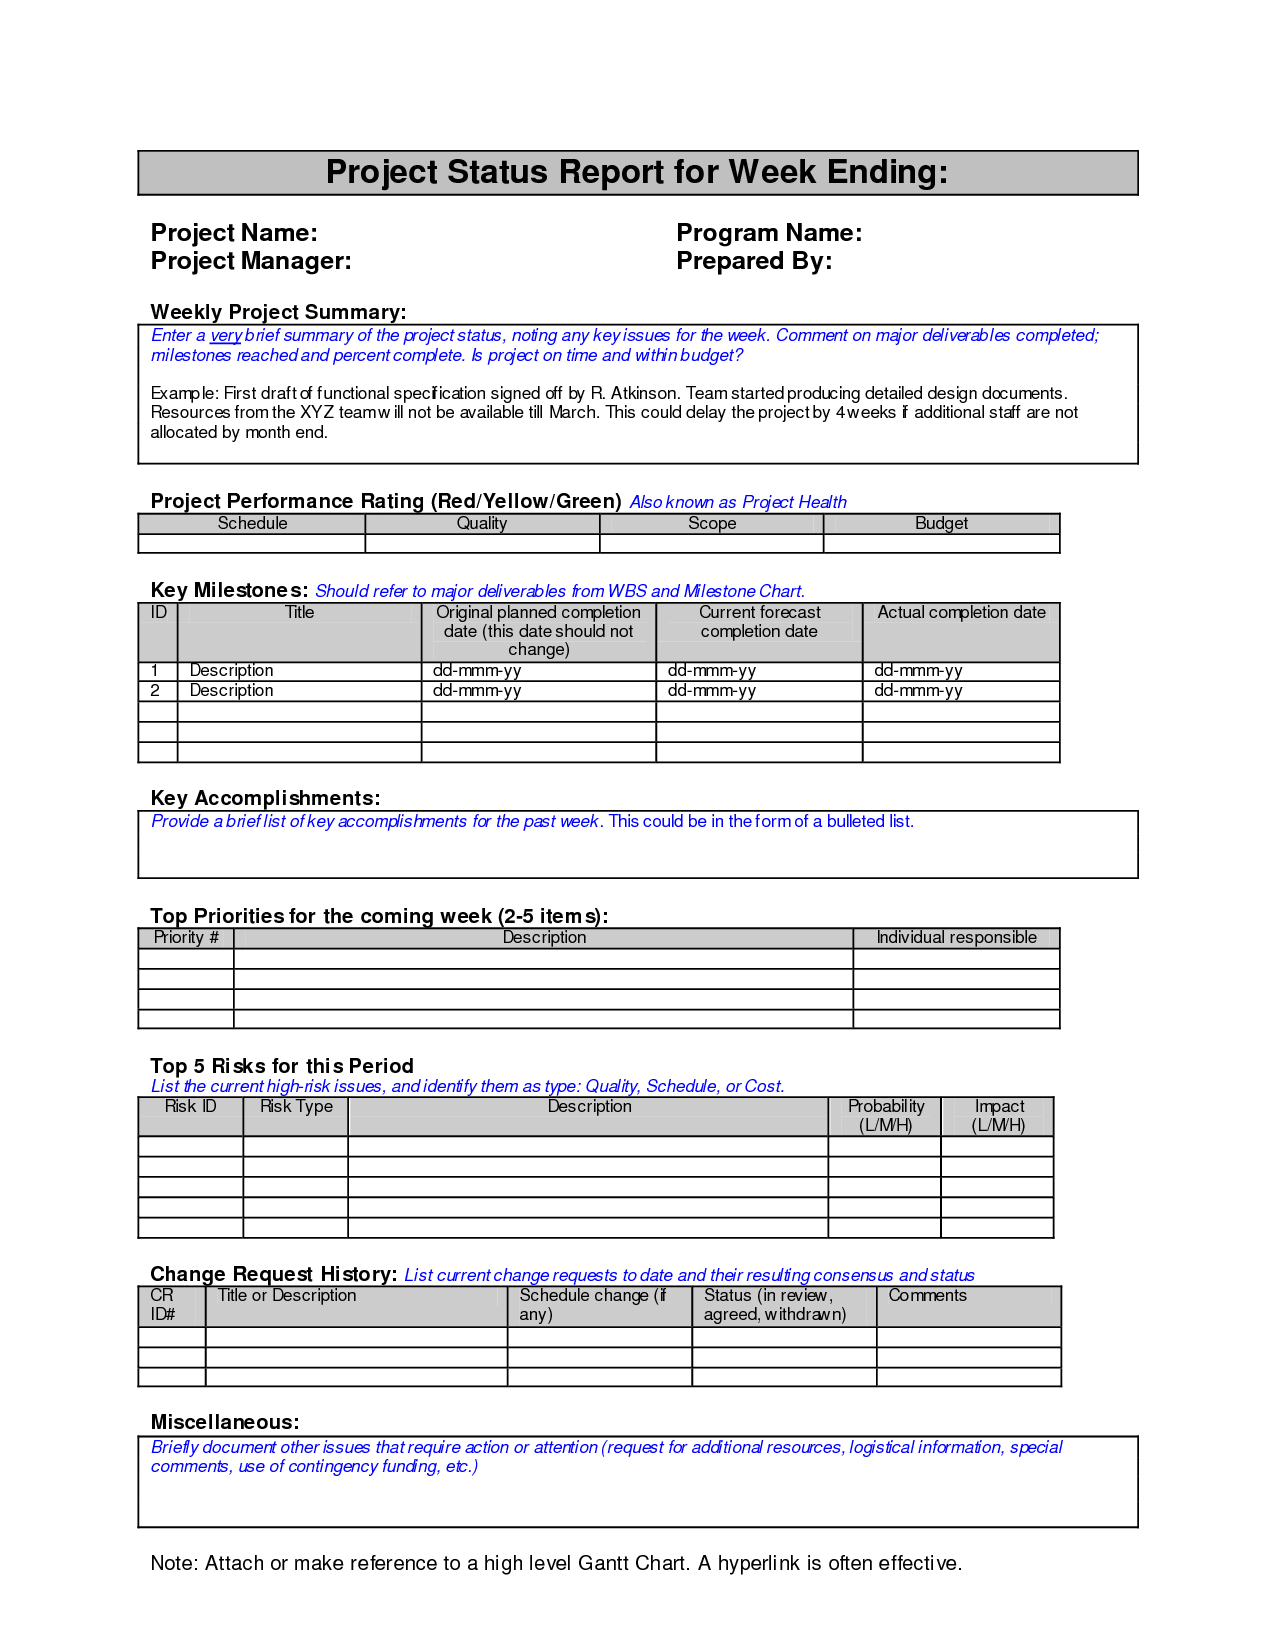 Project Summary Report Sample budget proposal template word – Project Summary Report Example